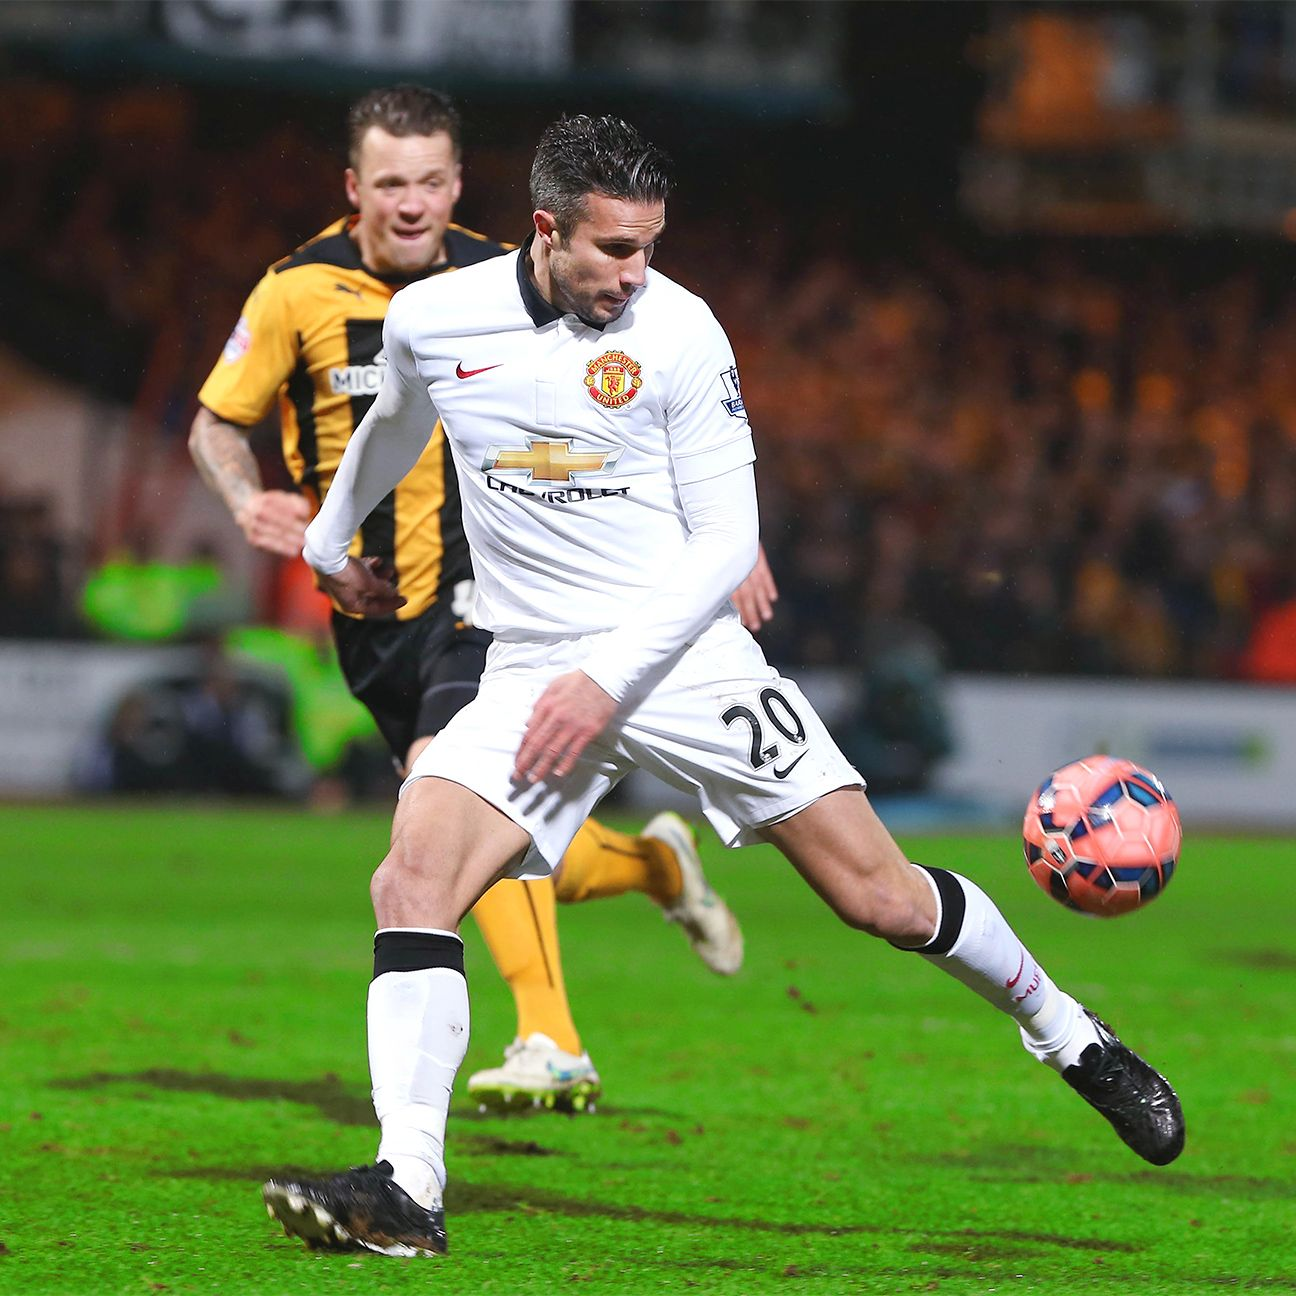 Season three has been a struggle for Robin van Persie at Manchester United.